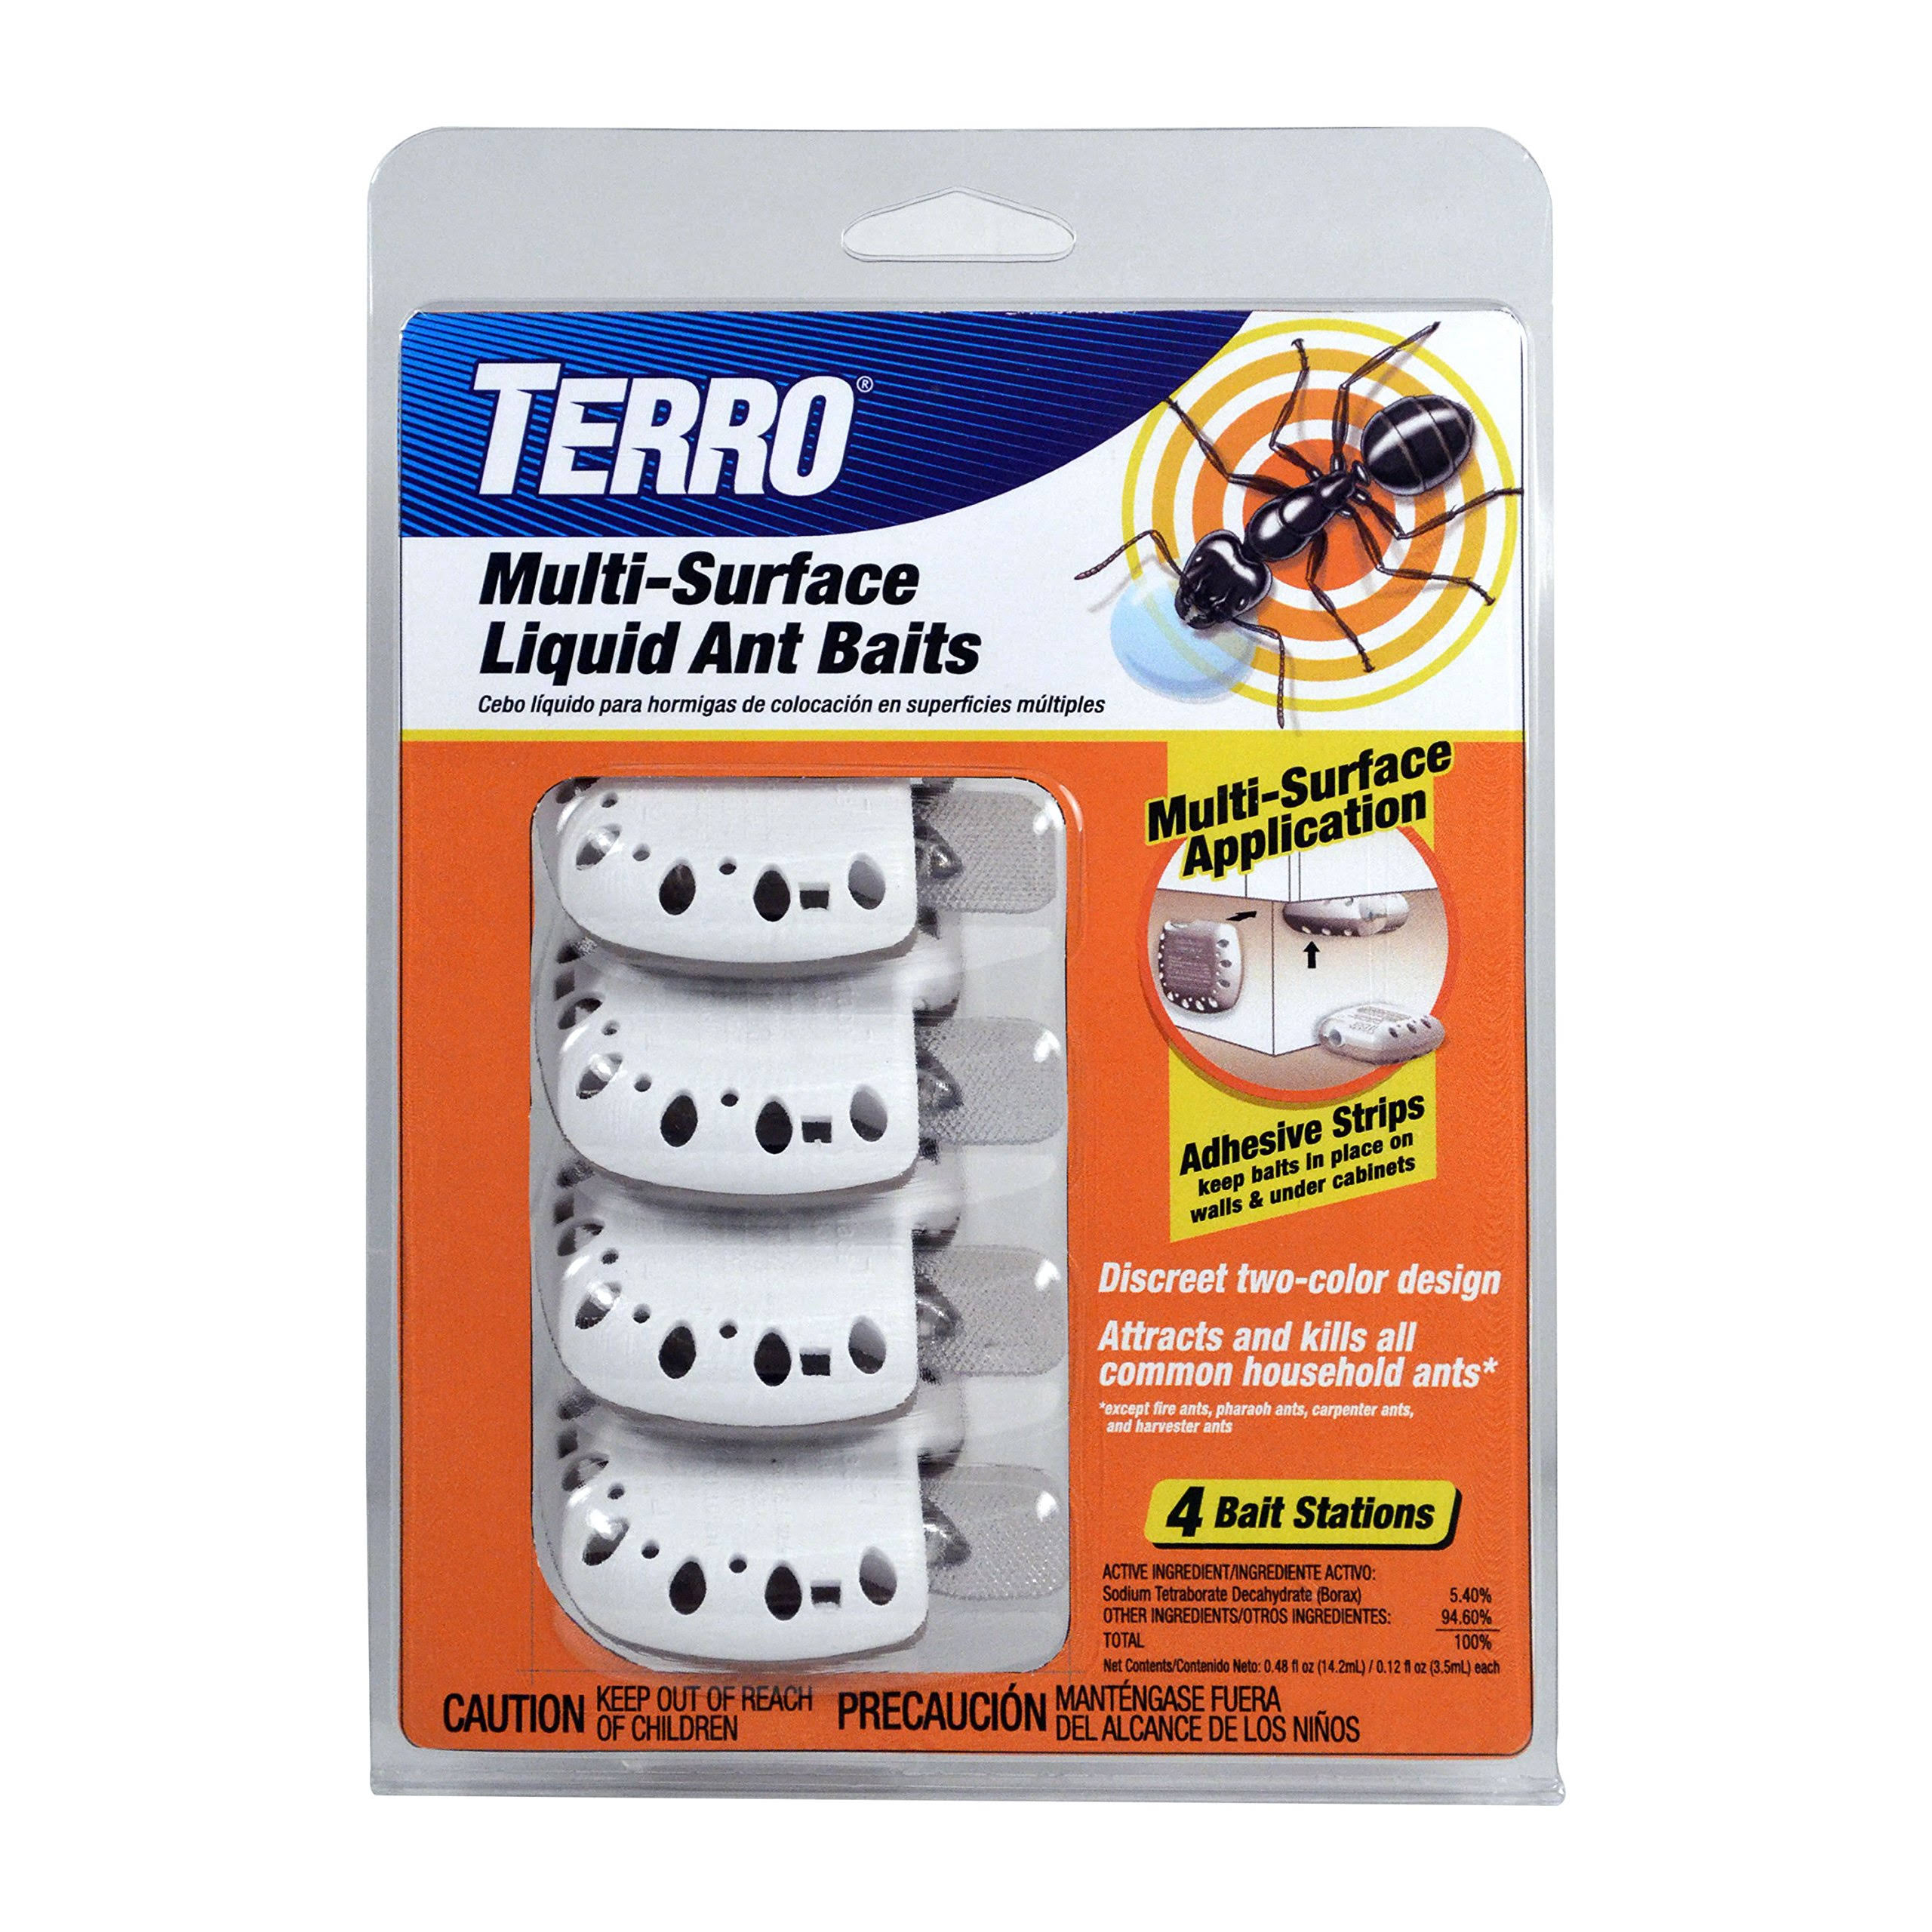 Terro Multi-Surface Liquid Ant Baits - 4 Bait Stations